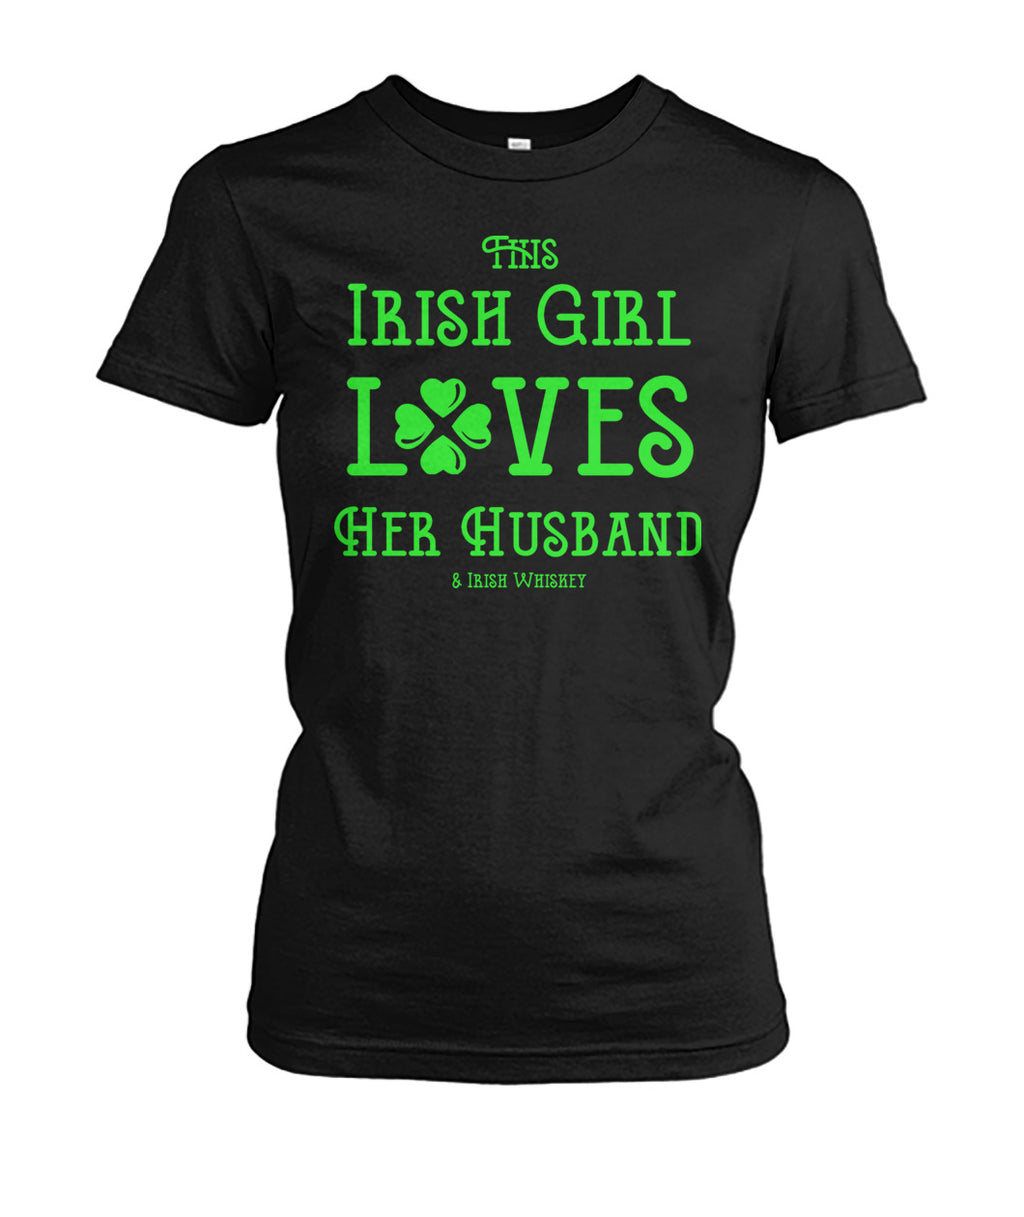 This Irish Girl Loves Her Husband & Whiskey